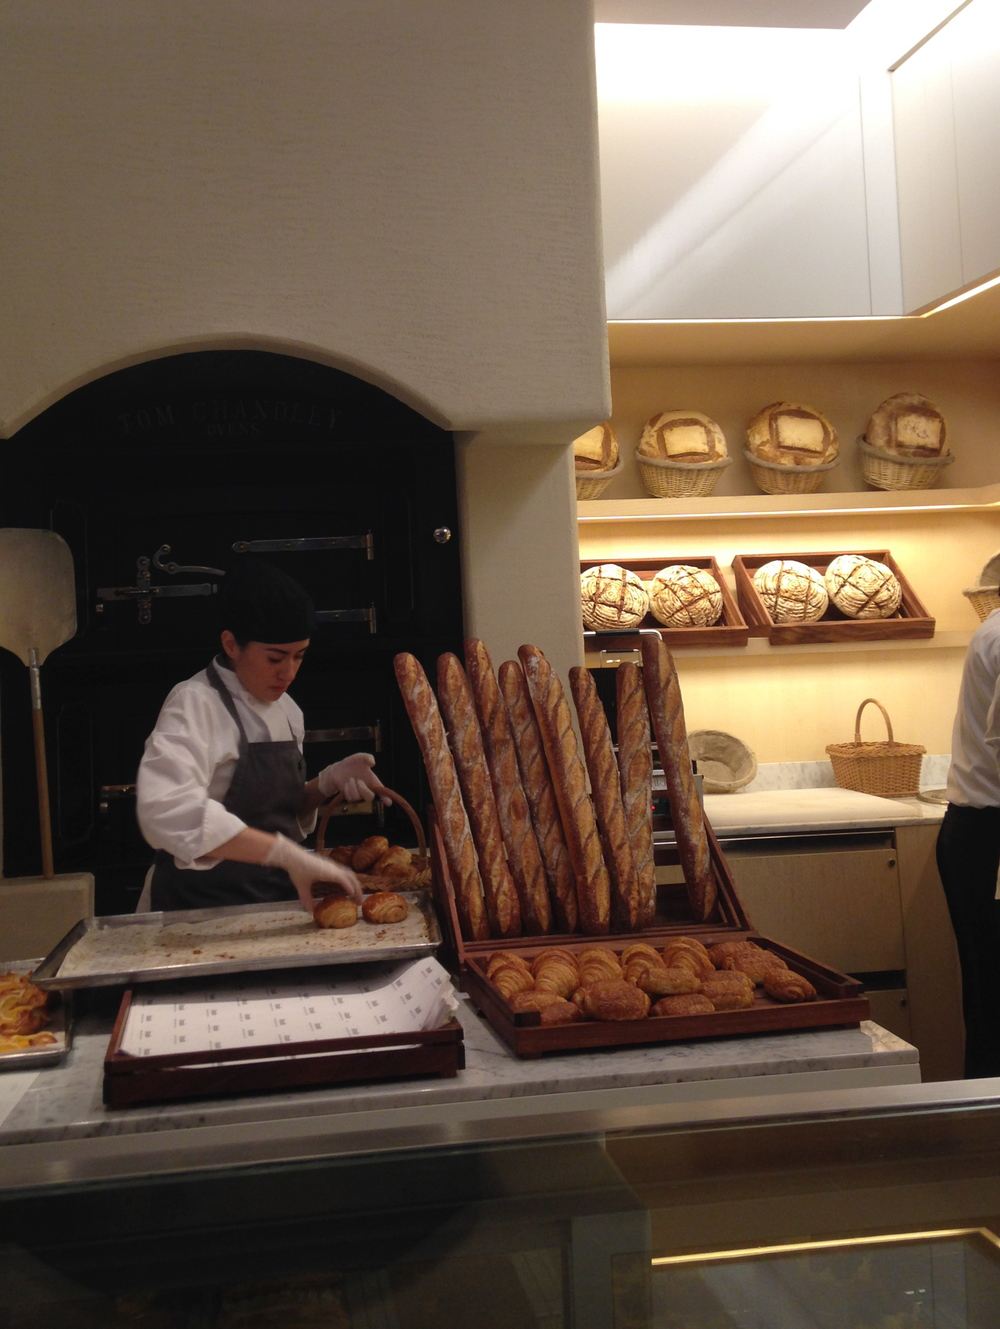 Little Parisian bakery in Mexico